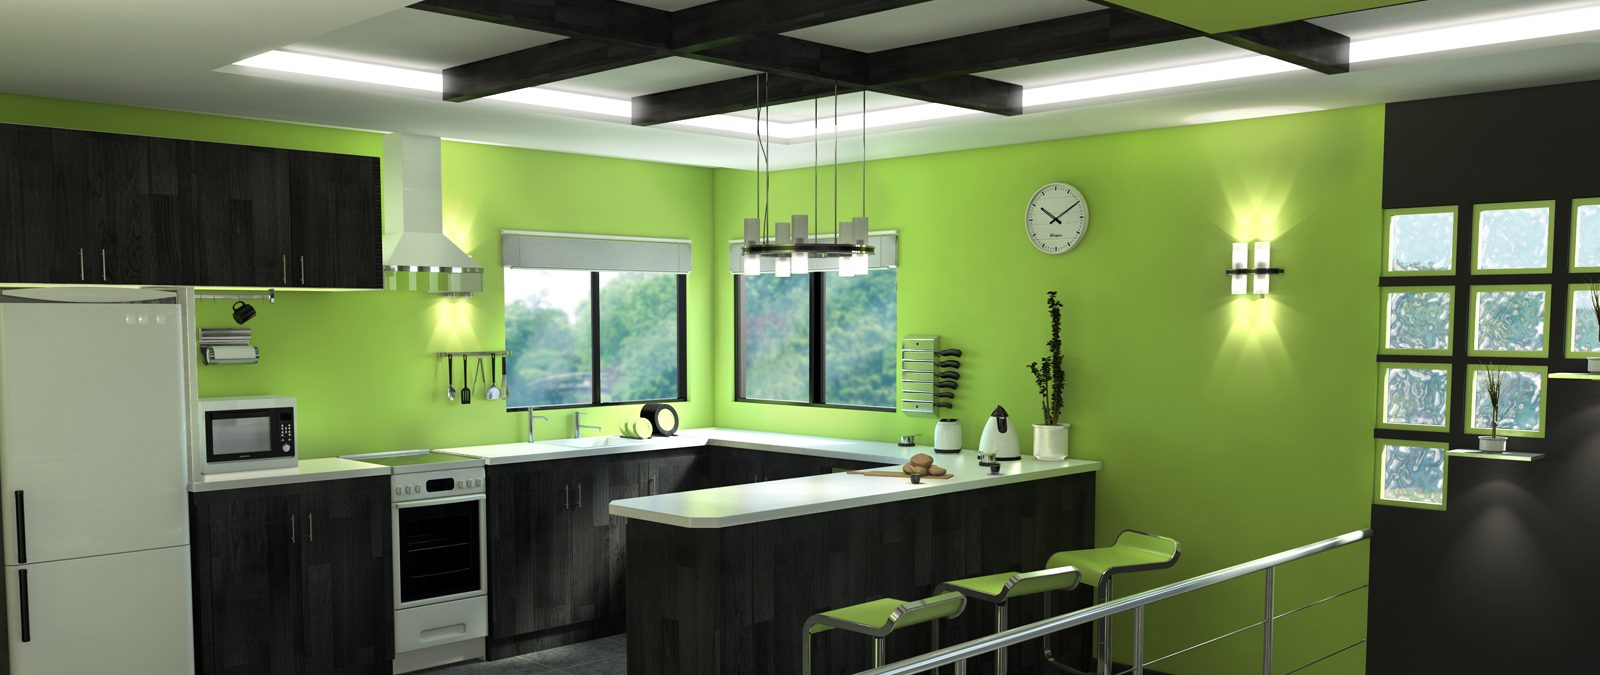 Interior design of kitchen in nepal images for Kitchen design in nepal